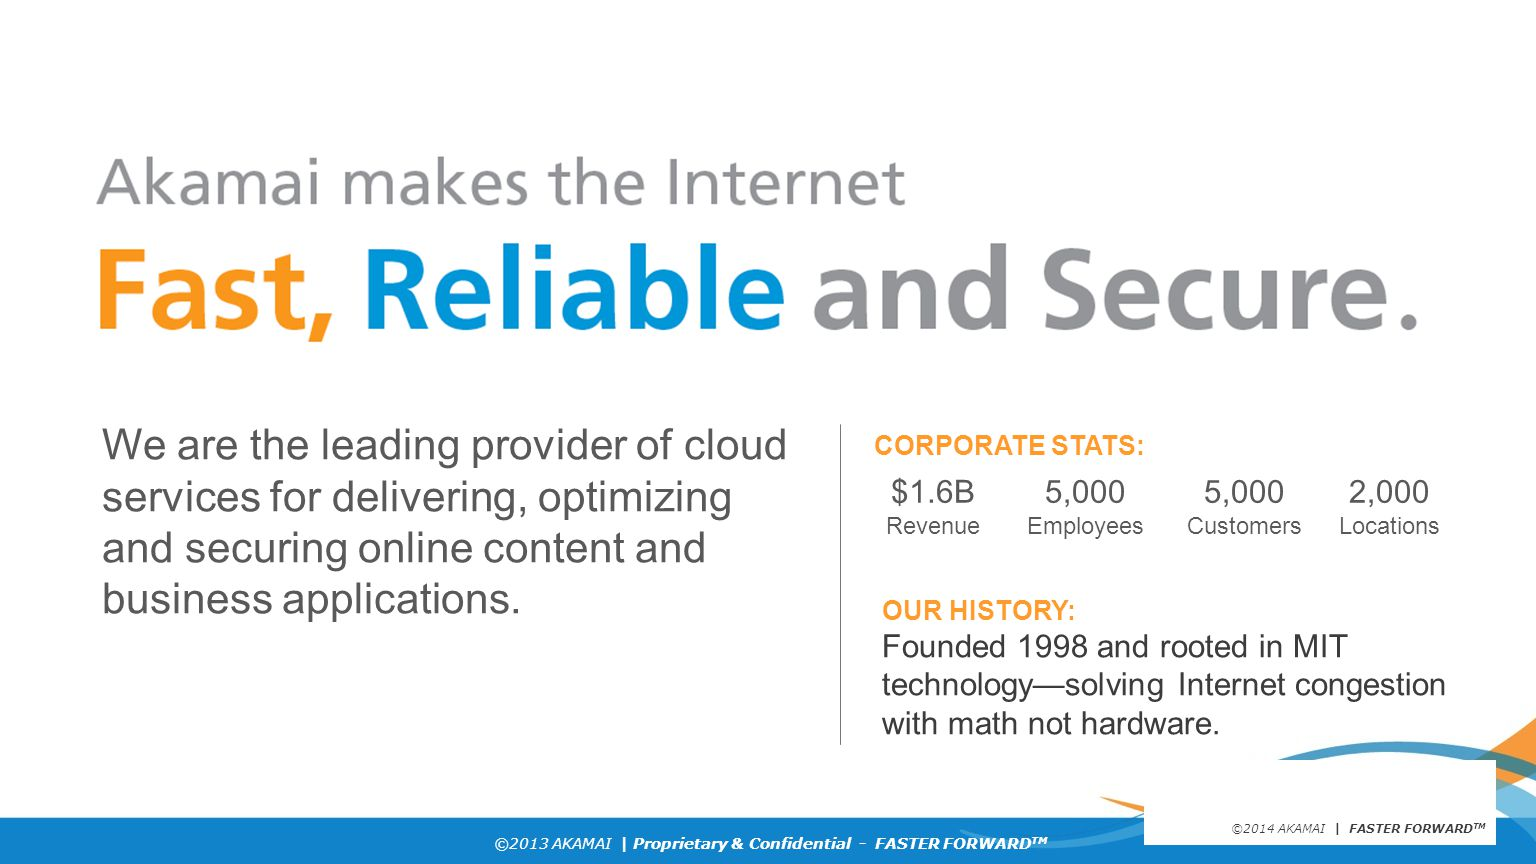 ©2013 AKAMAI | Proprietary & Confidential - FASTER FORWARD TM Grow revenue opportunities with fast, personalized web experiences and manage complexity